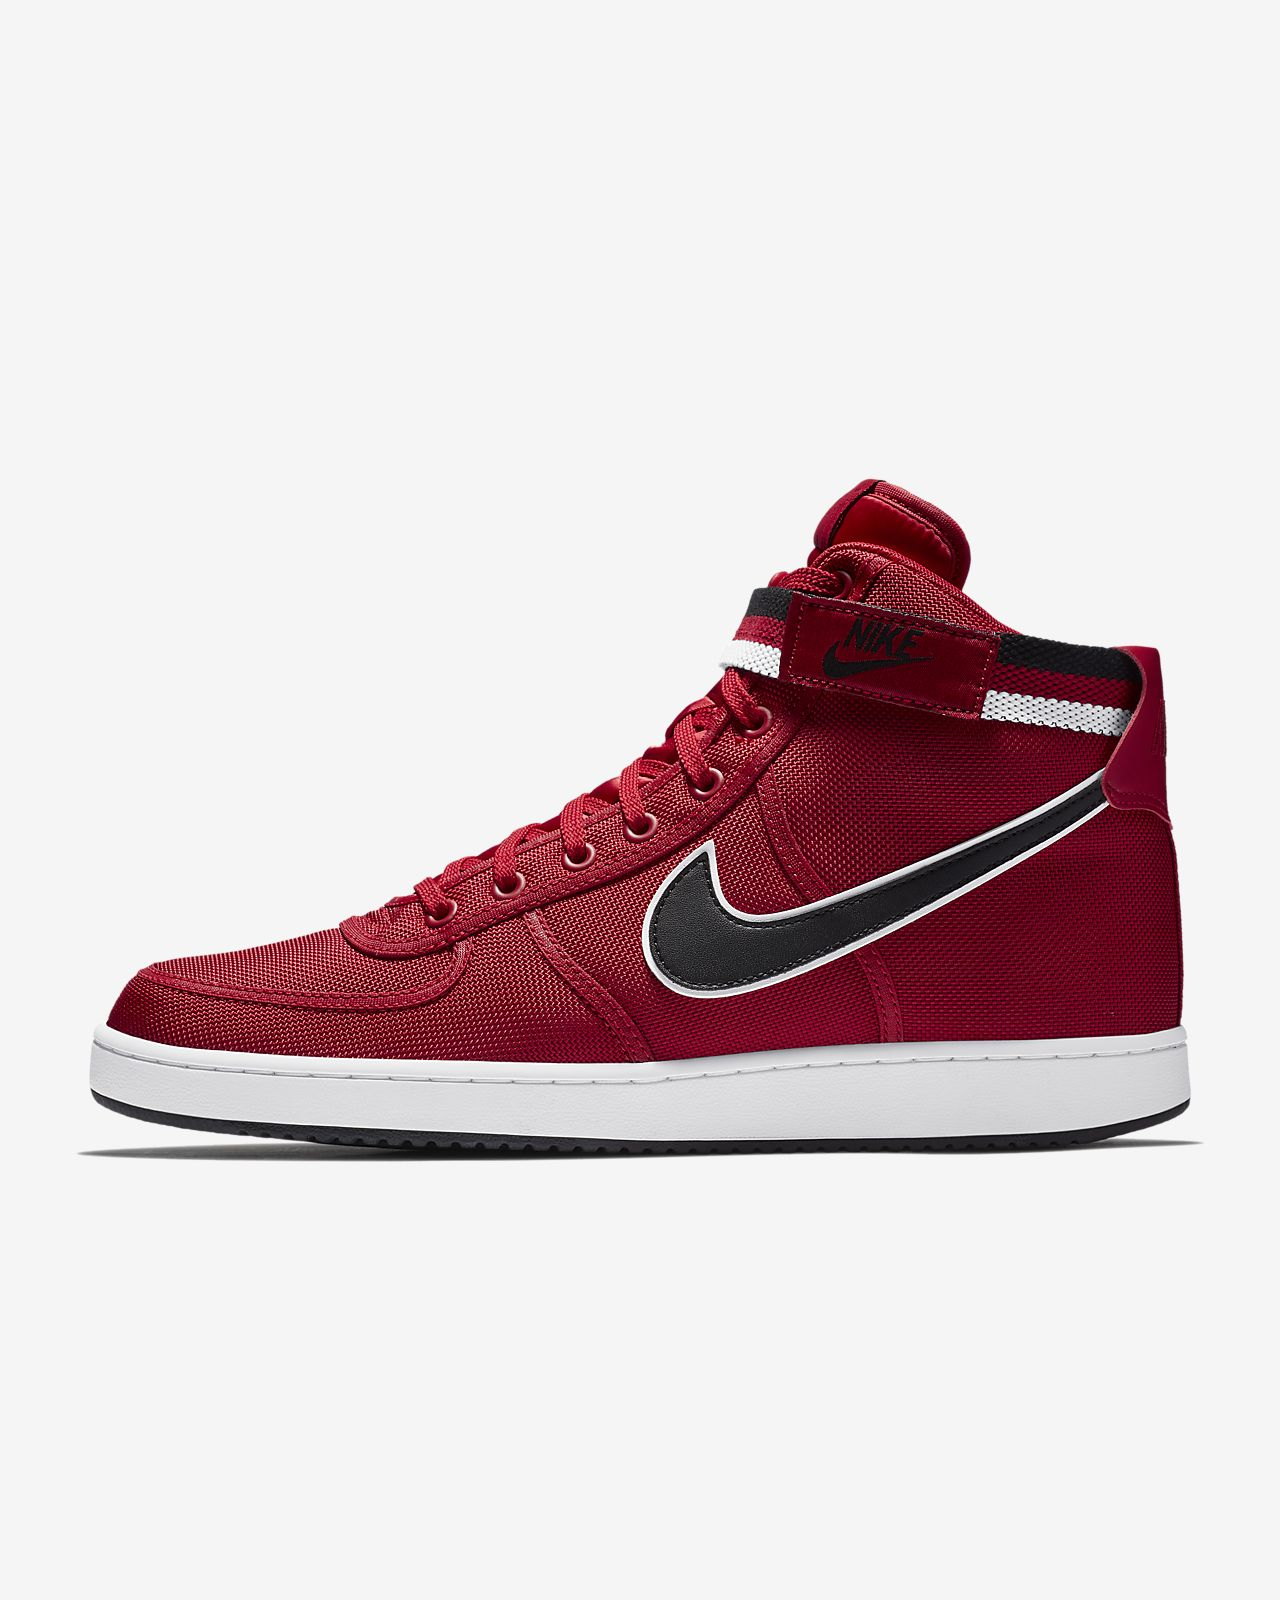 Nike Vandal High Supreme Mens Shoe